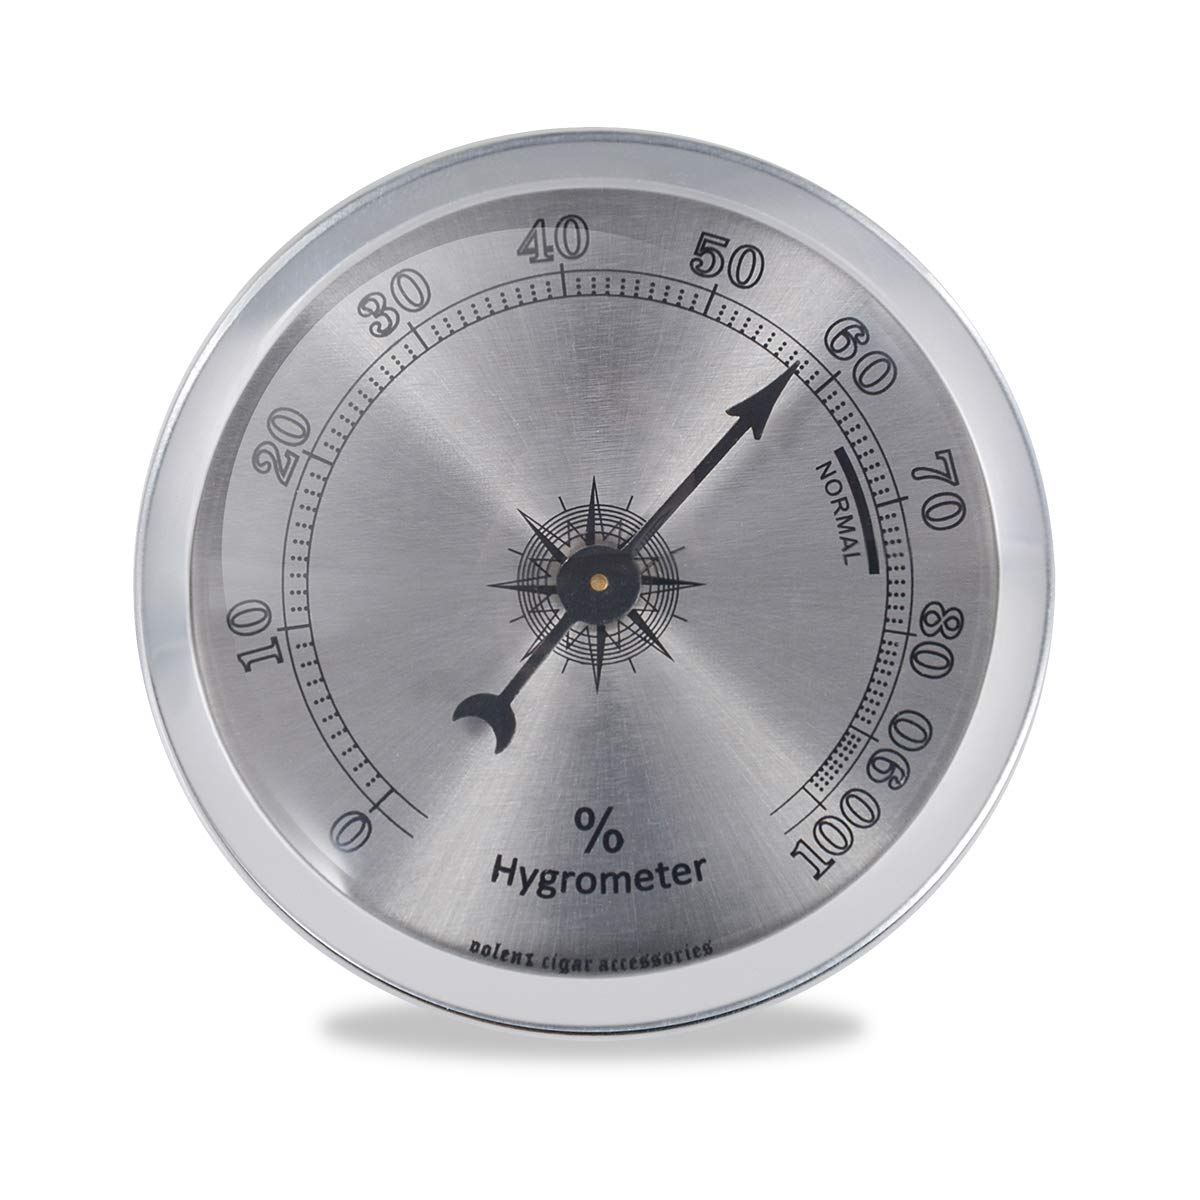 Analog Hygrometer for Cigar Humidor, Round Indoor Humidity Gauge Monitor with +/- 1% Accuracy (Silver) by Volenx